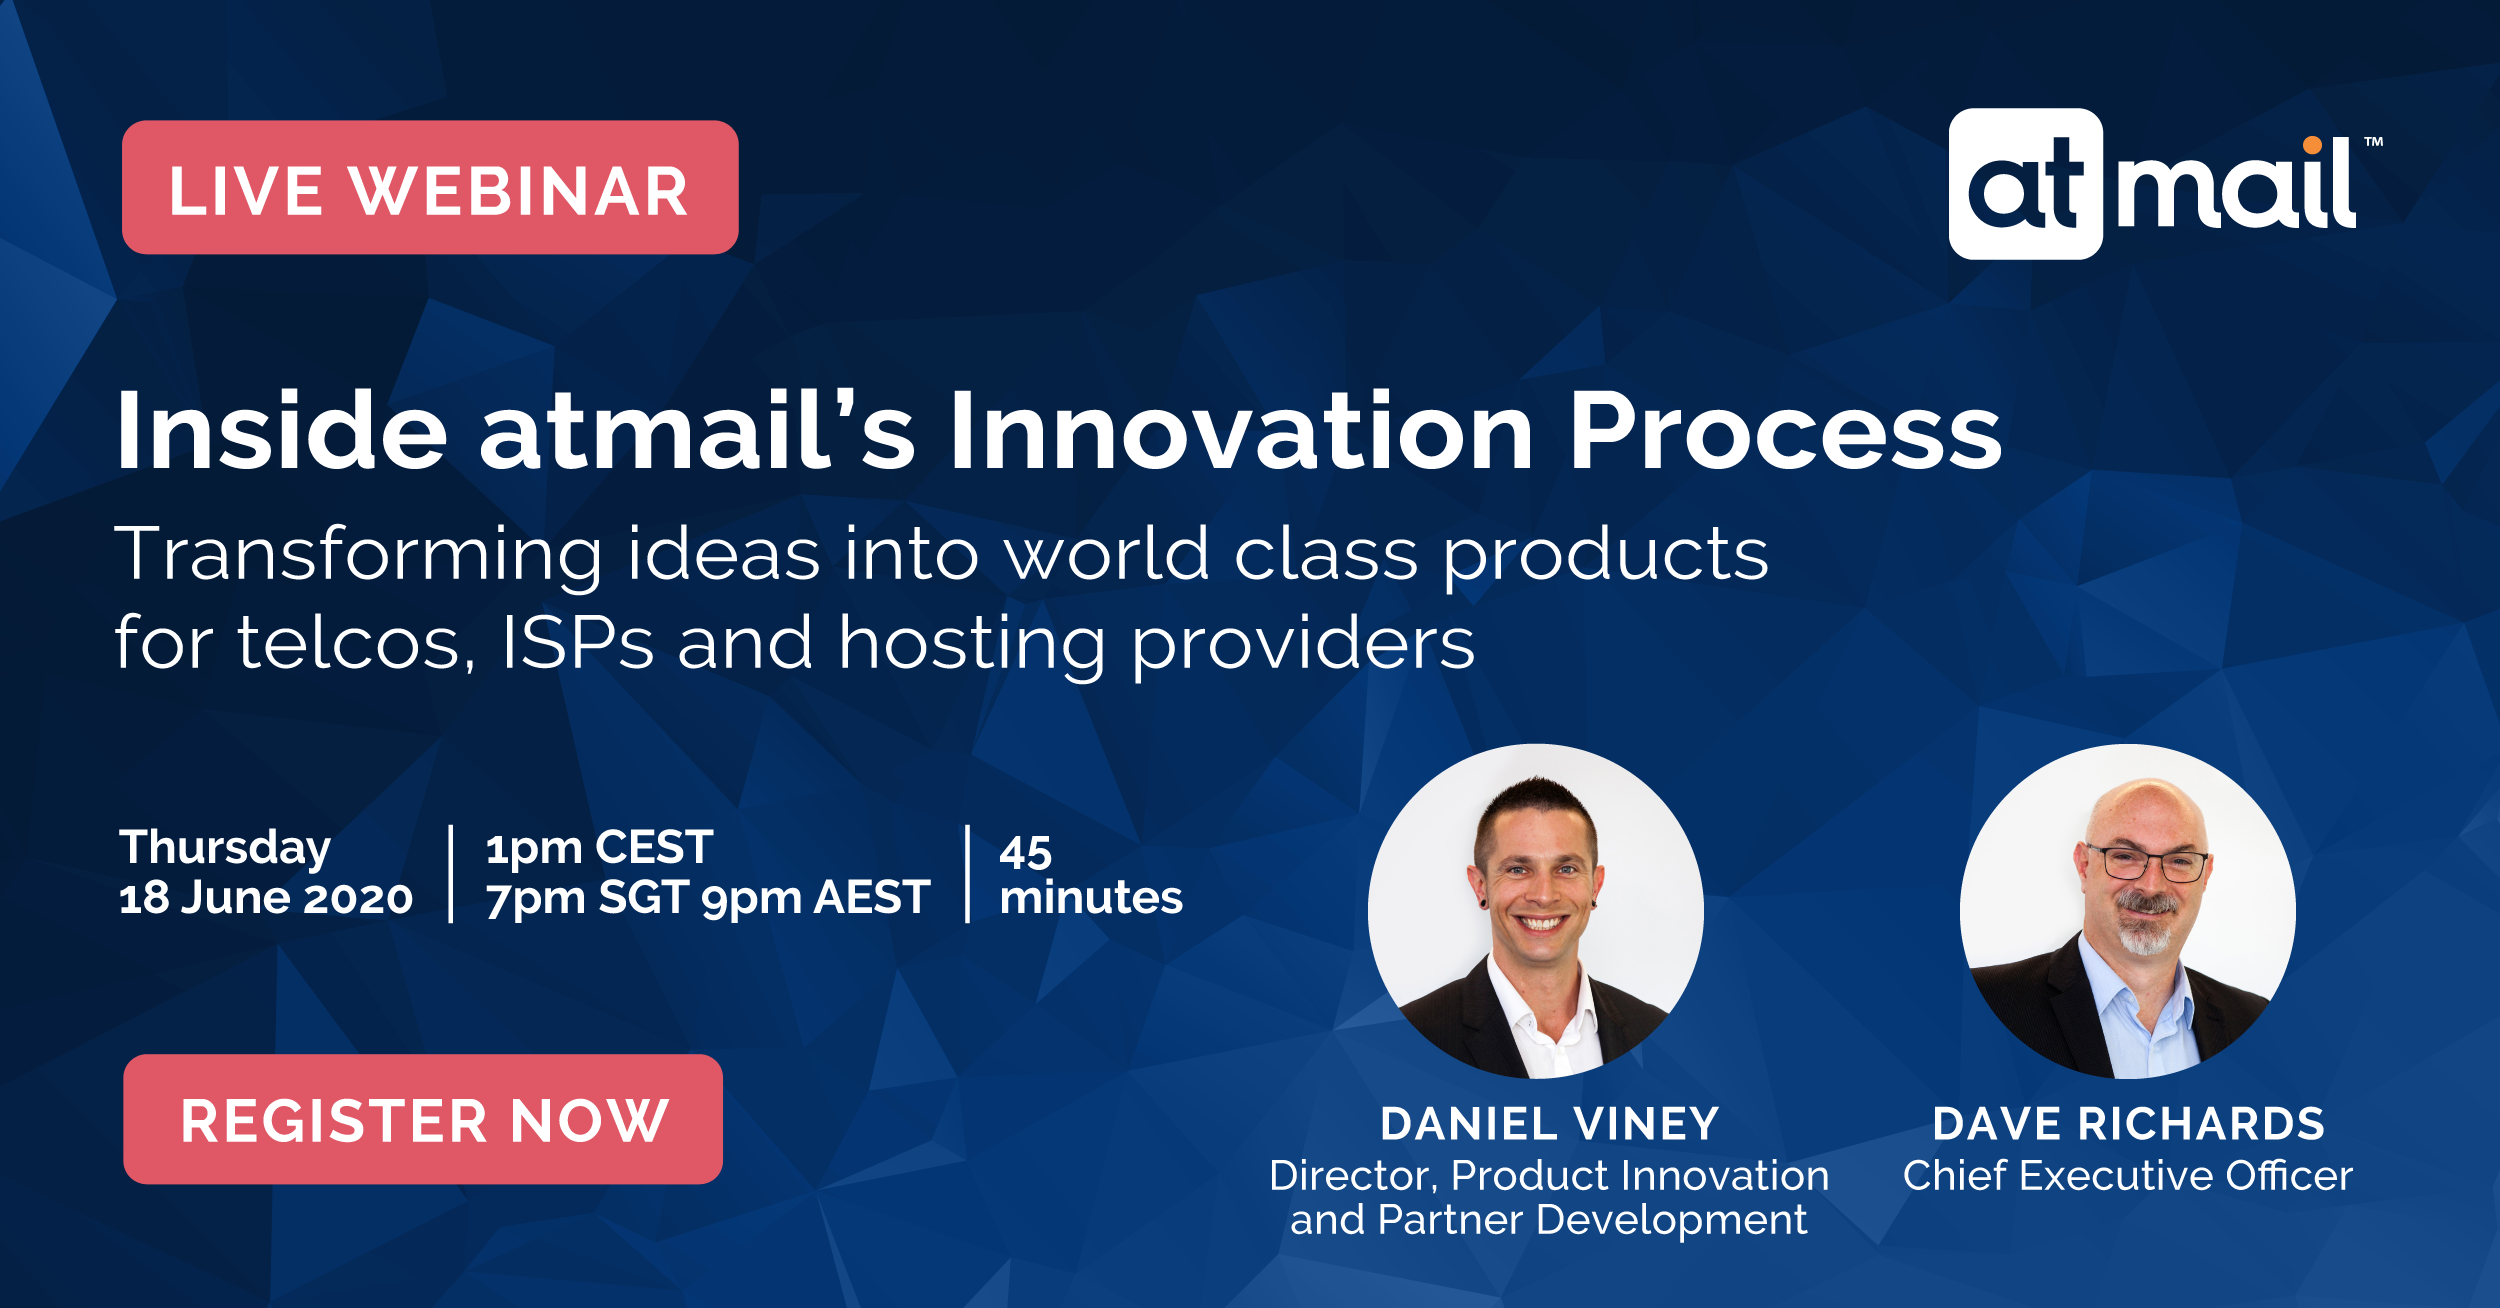 atmail's innovation process, Daniel Viney, Dave Richards, email hosting for telcos, ISPs and hosting providers